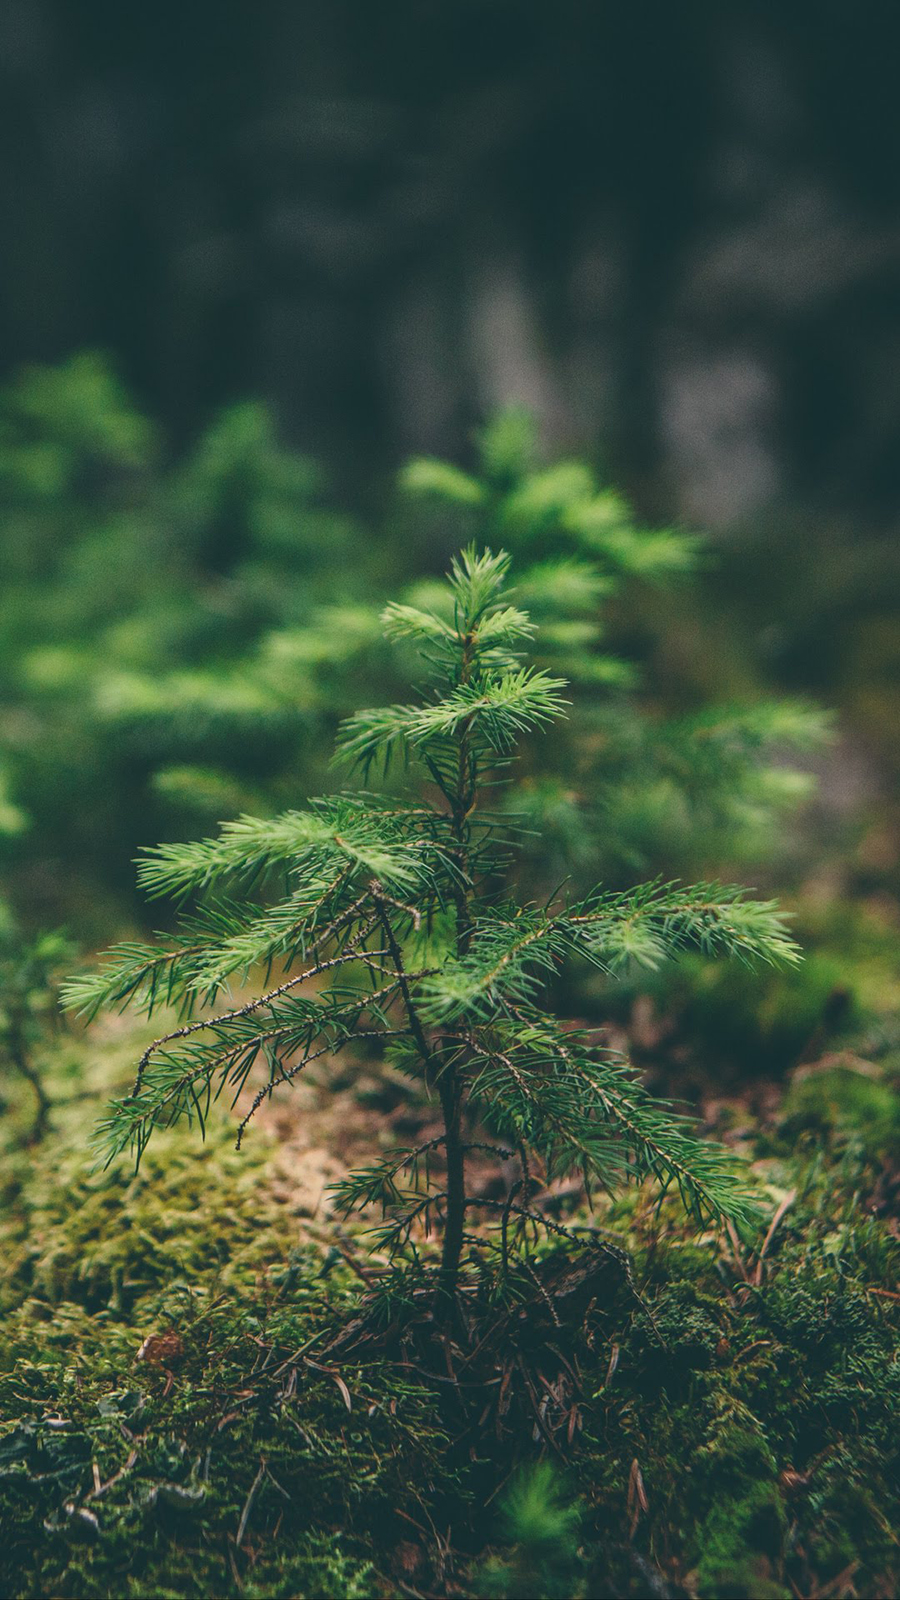 Tree Wallpapers Free Download – Best Tree Wallpapers for Mobile